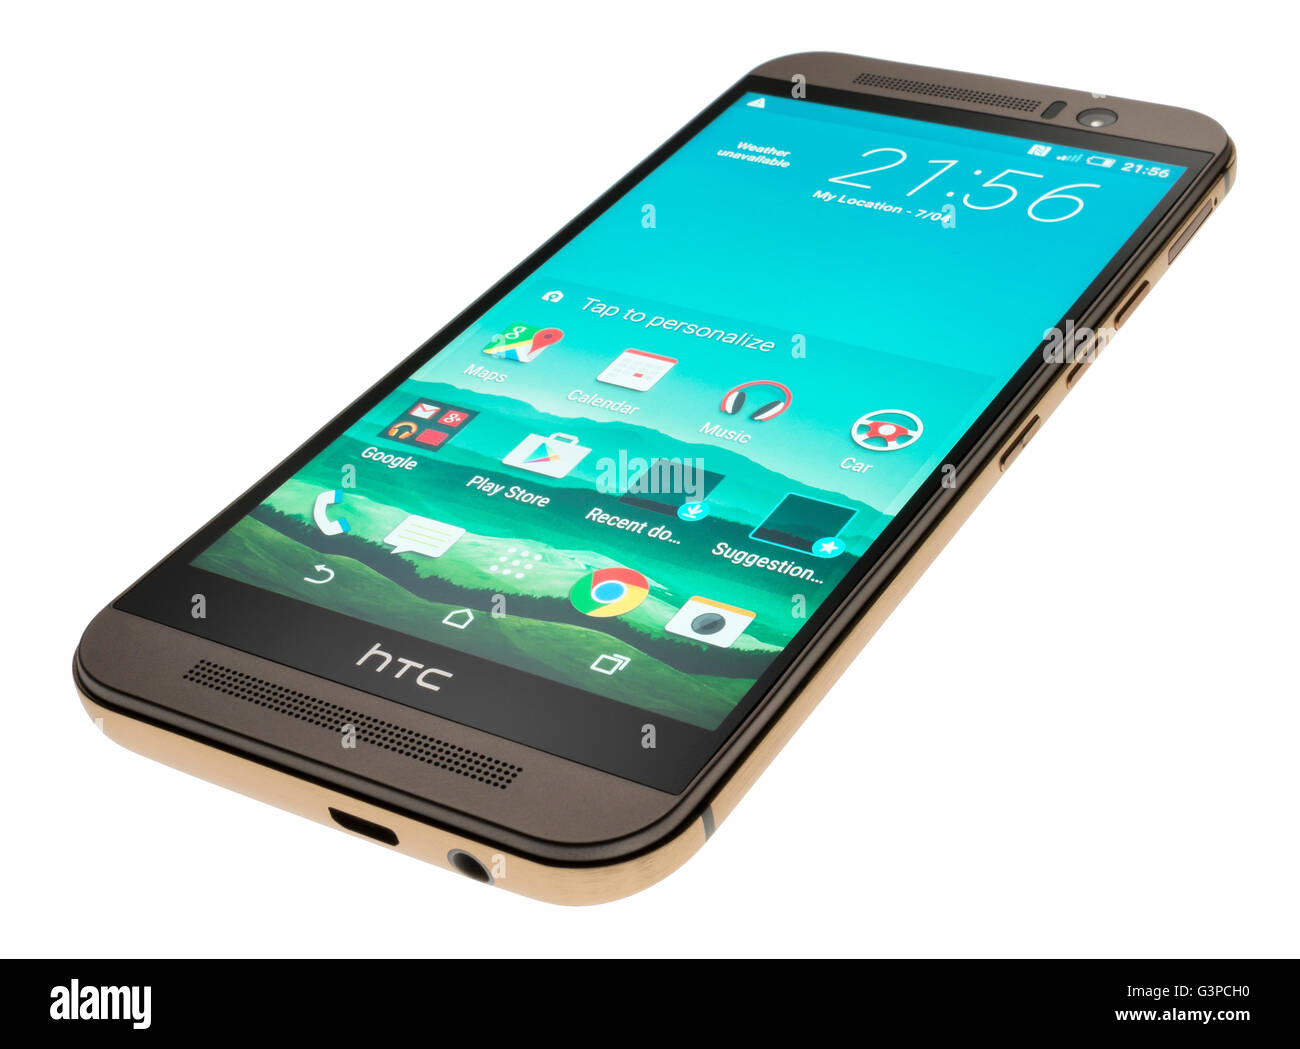 HTC One M9 mobile phone. Smartphone from Taiwan. Cellphone with home screen and app icons. - Stock Image